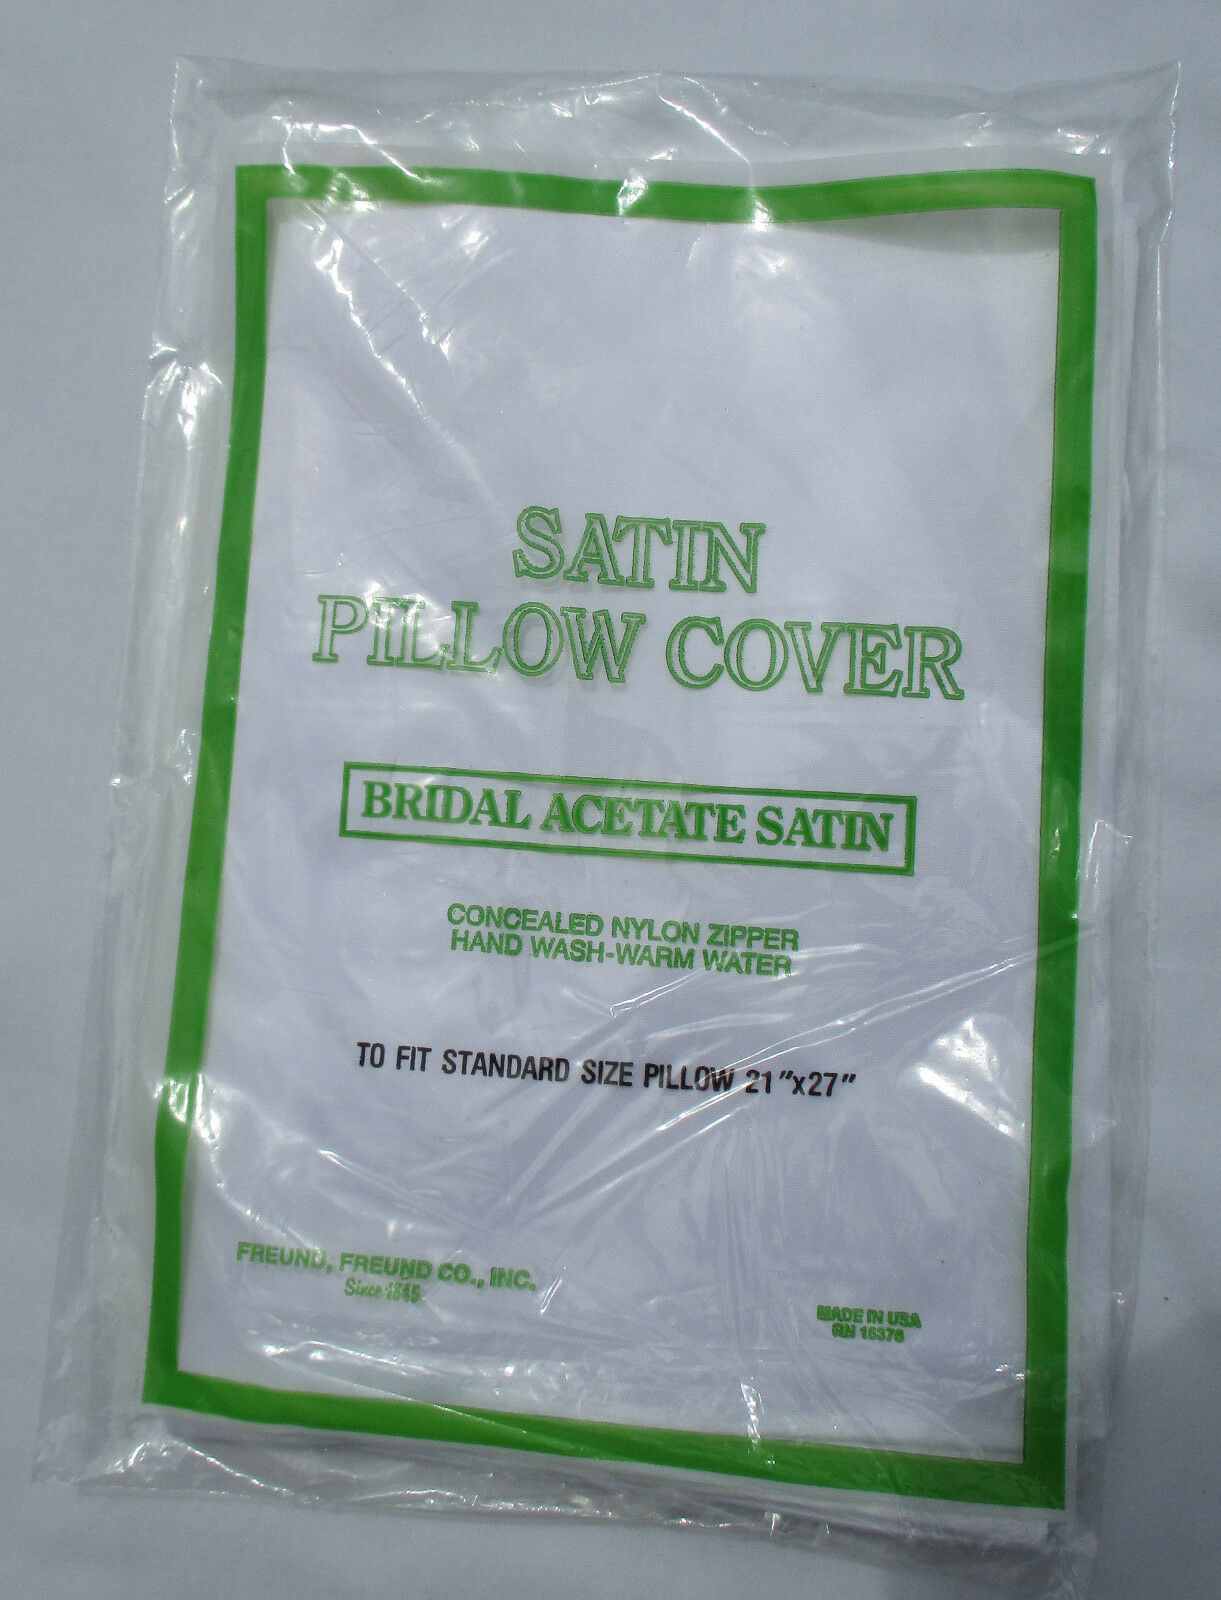 BRIDAL ACETATE SATIN PILLOW COVER WITH CONCEALED NYLON ZIPPE